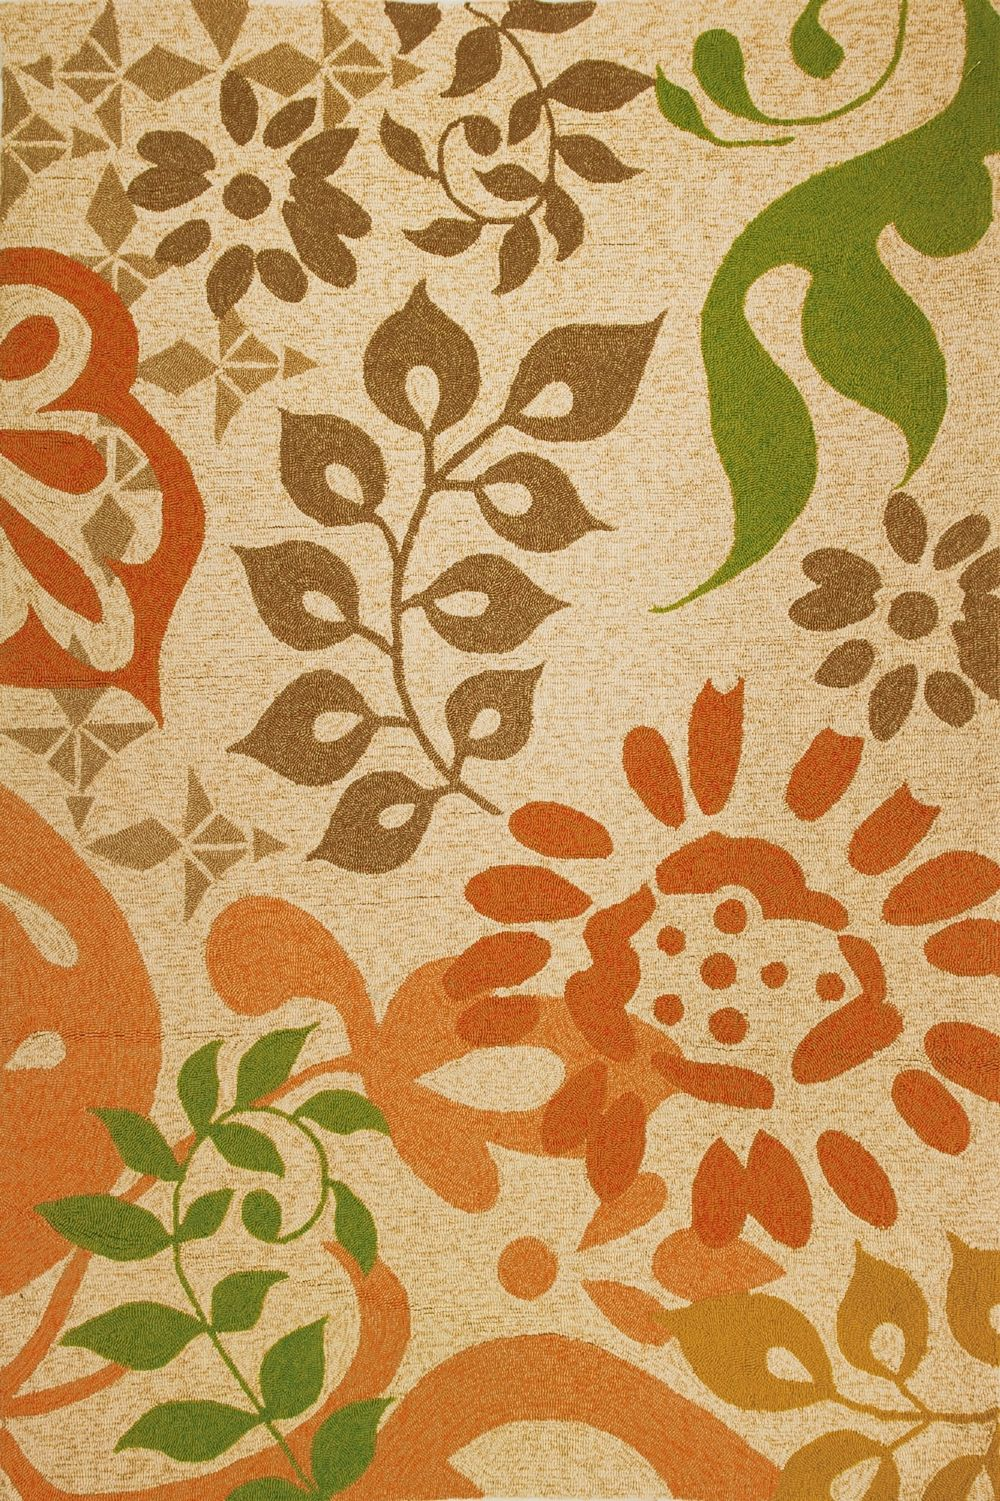 homefires global fusion country & floral area rug collection